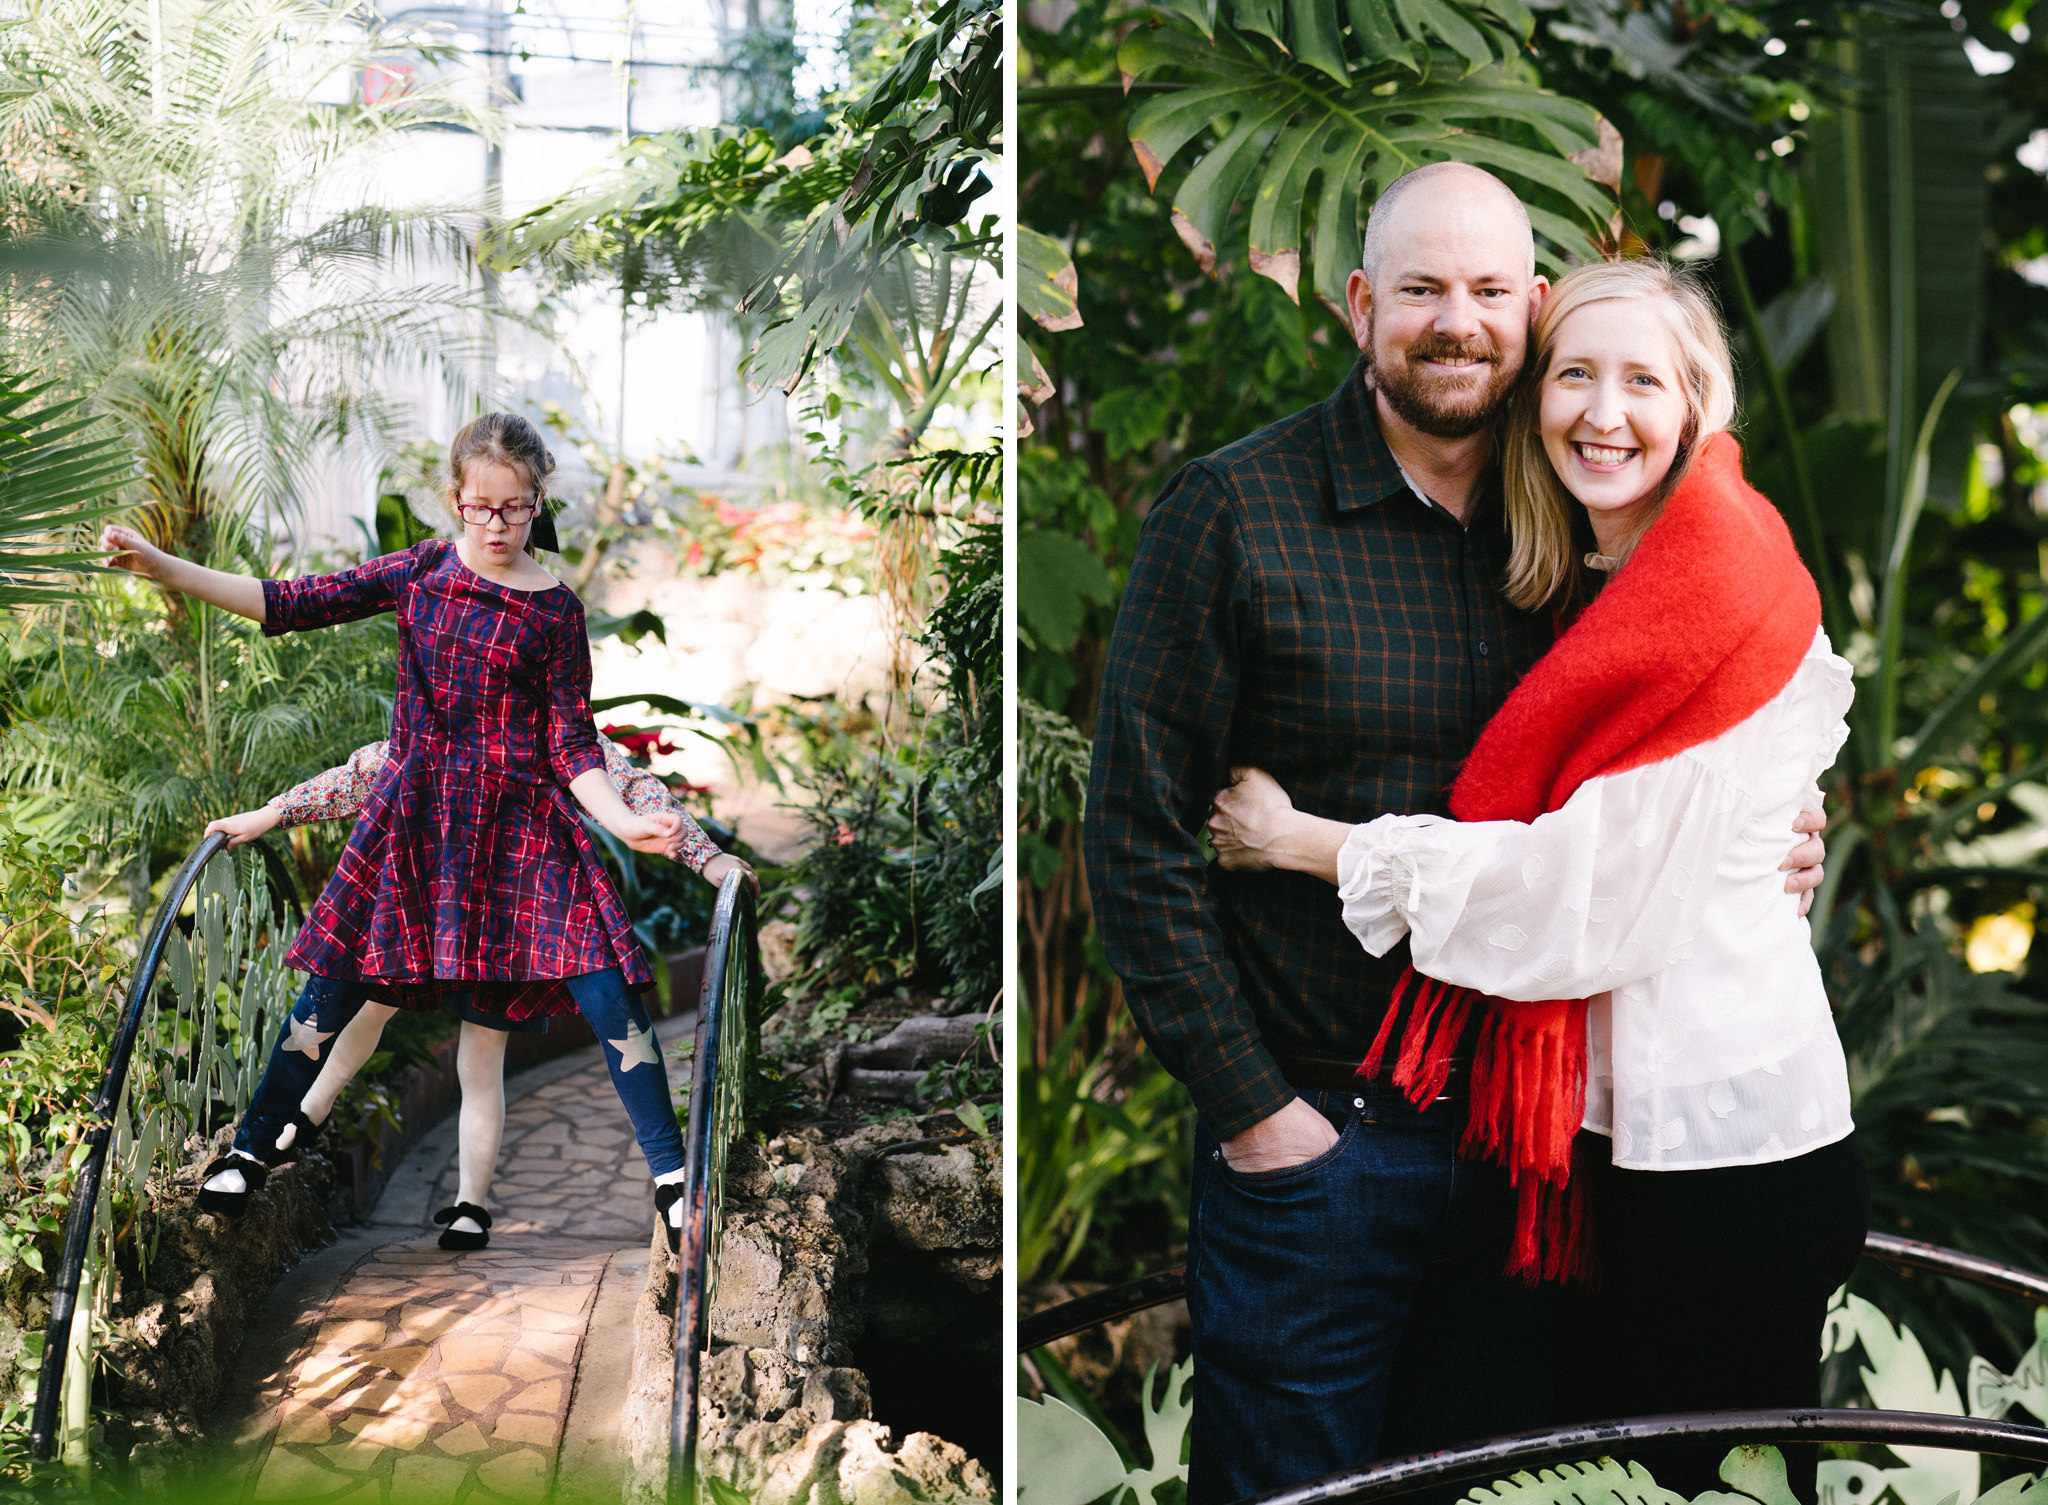 010-rempel-photography-chicago-wedding-inspiration-oak-park-conservatory-family-photo-session-bailey-forest-park-berwin-area-photographers.jpg